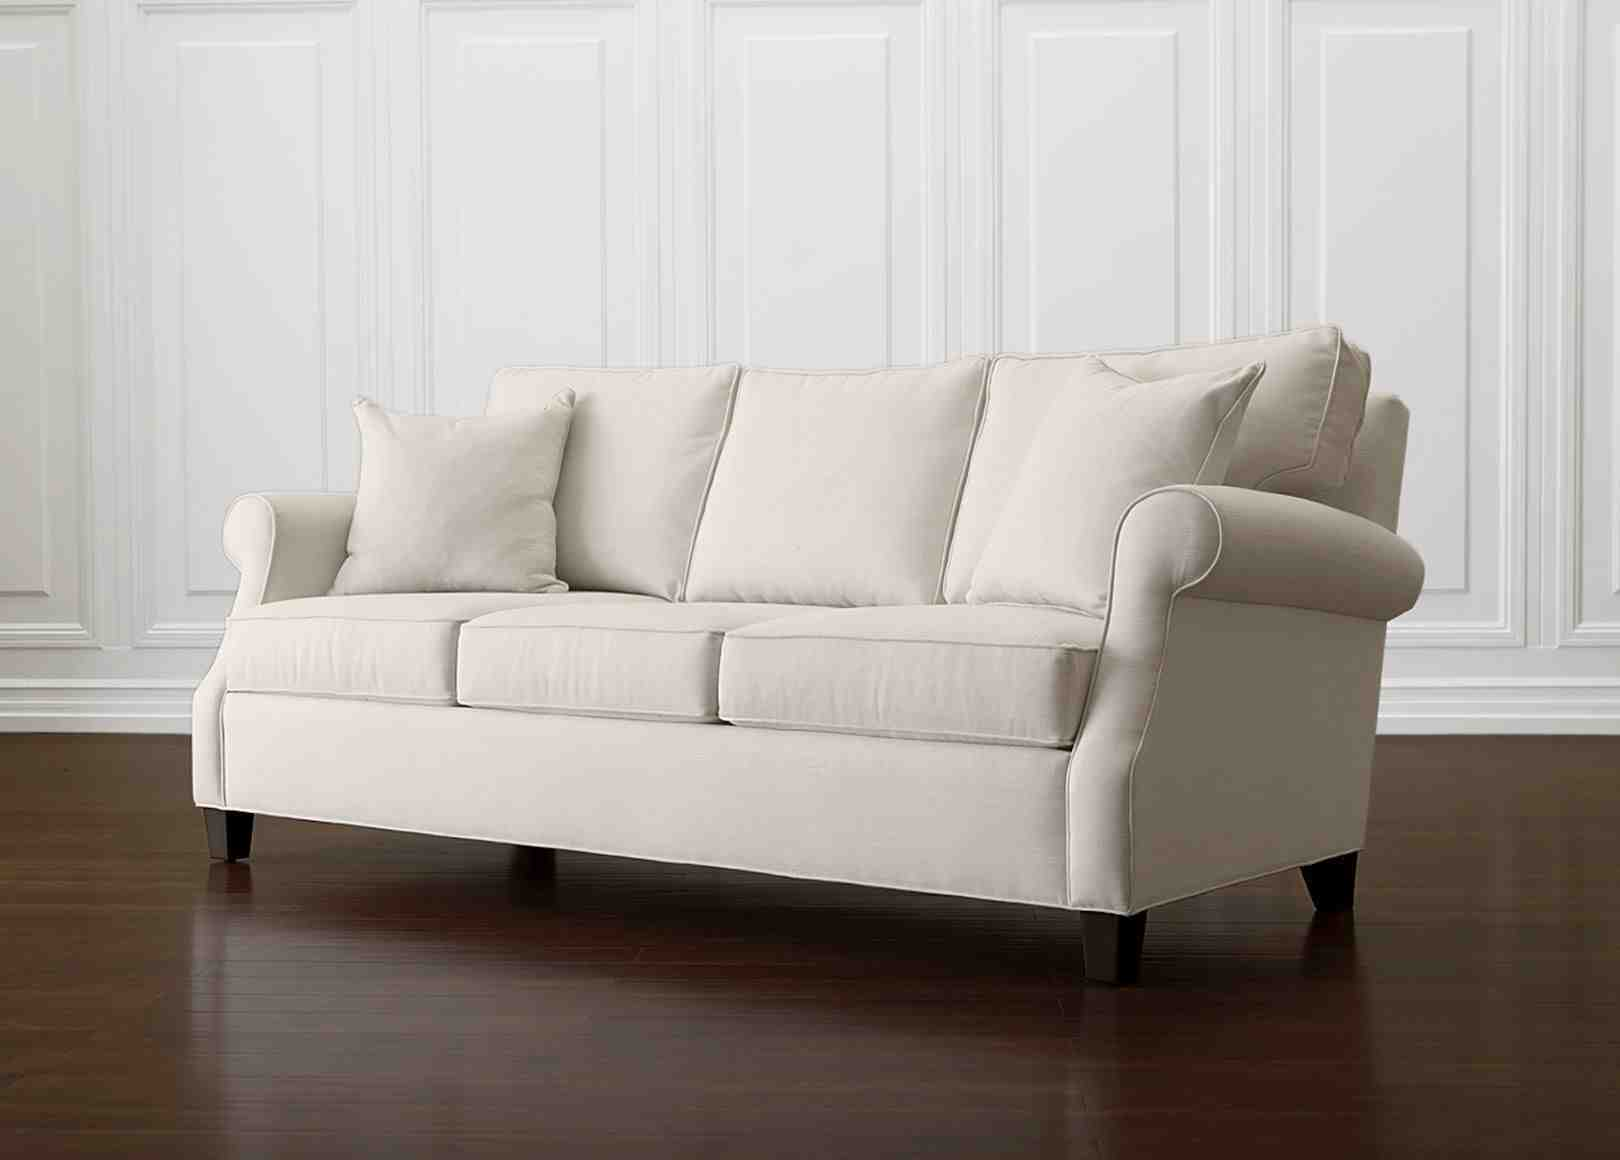 ethan allen sofas jcpenney leather on sale home furniture design